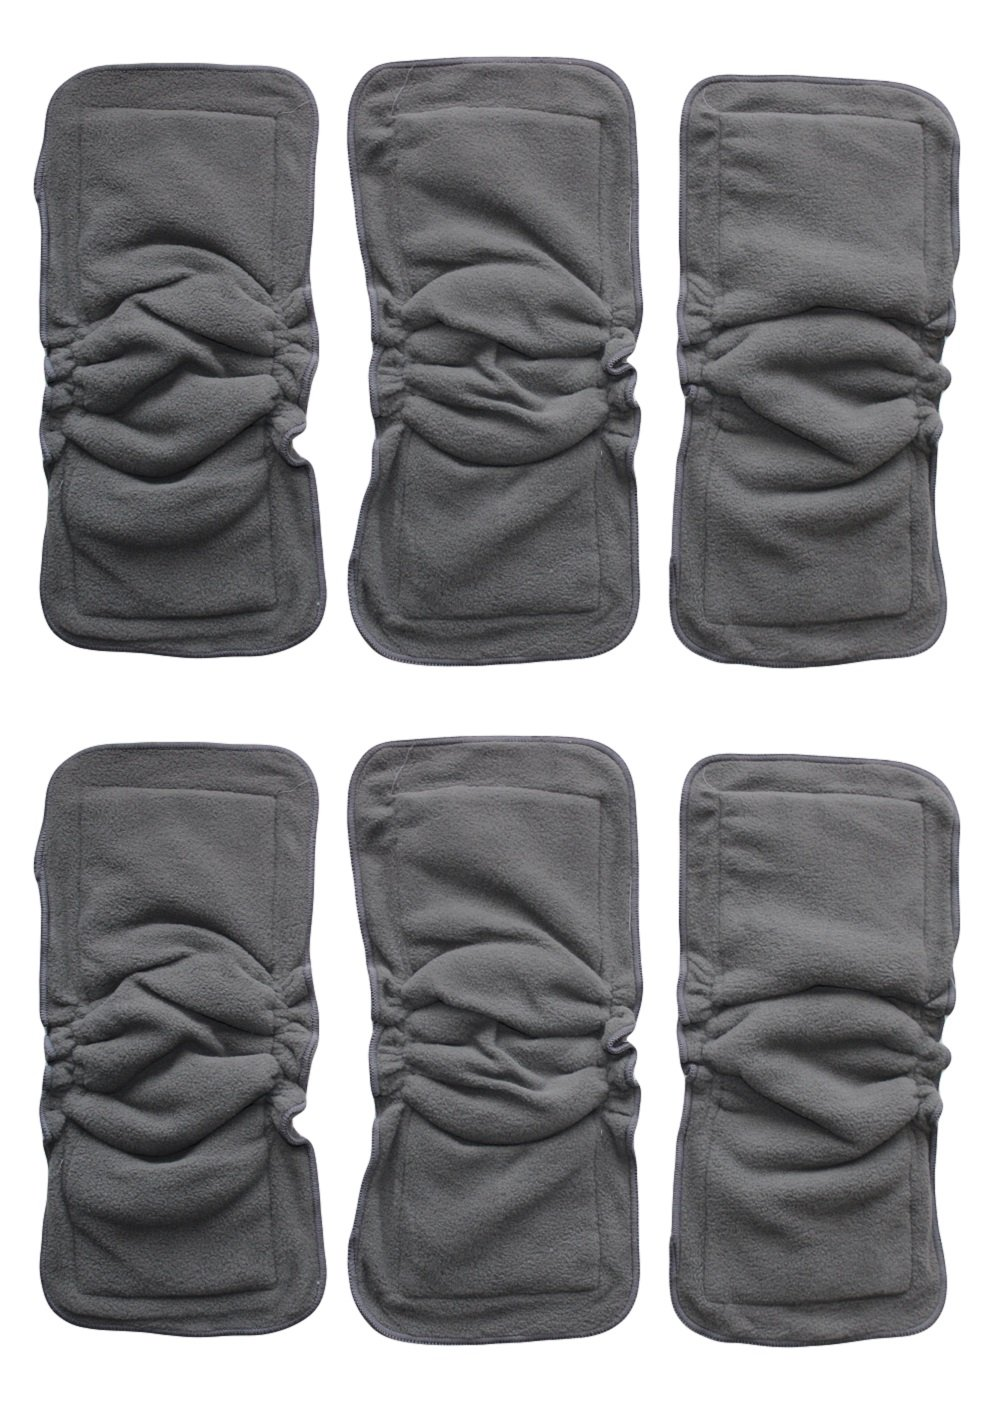 See Diapers 6 Pack Bamboo Charcoal Inserts or Doublers with Gussets for Cloth Diapers 14'' X 5'' by See Diapers